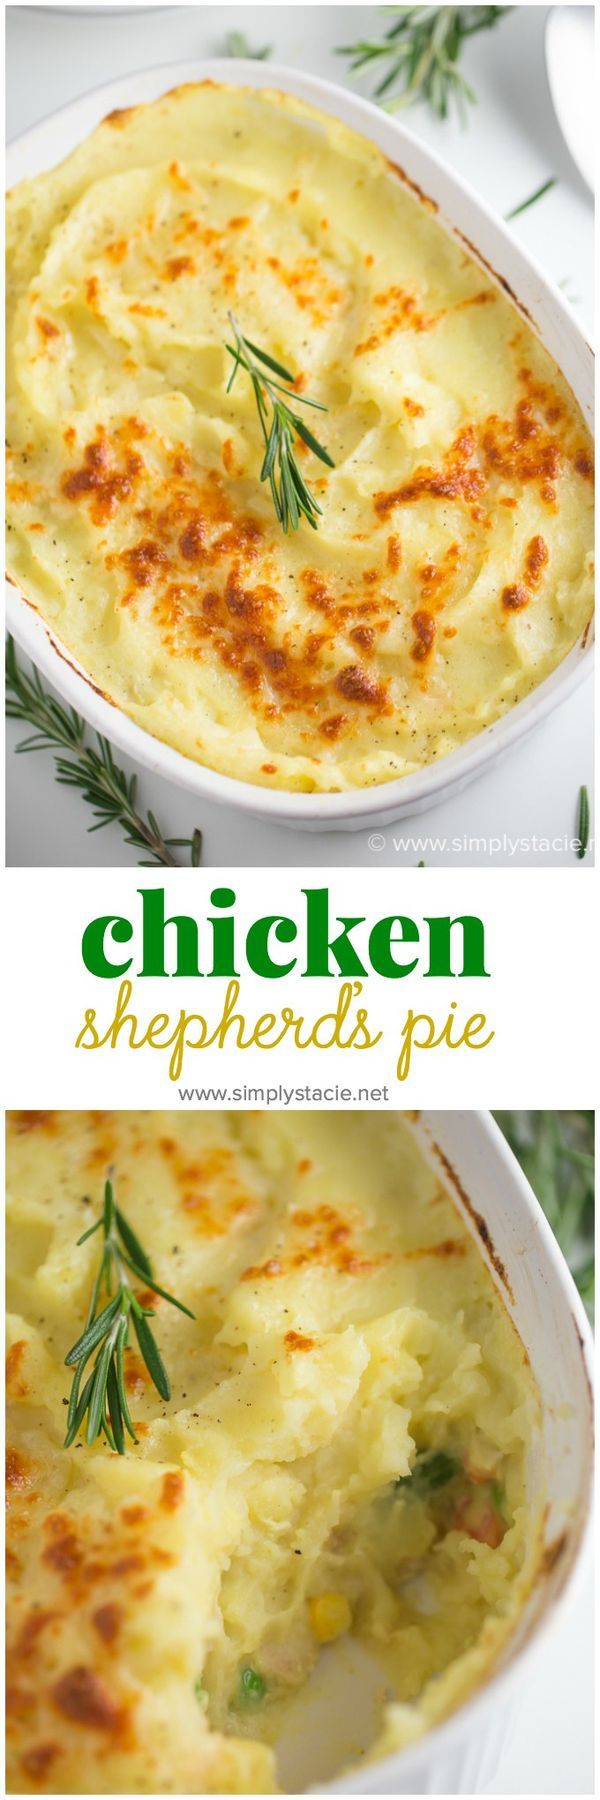 Chicken Shepherd's Pie: Not your mama's Shepherd Pie! This version is made with a creamy curry sauce that is out of this world. Topped with a heavenly layer of mashed potatoes and Parmesan cheese, this comfort food recipe will not last long. Mmm good.